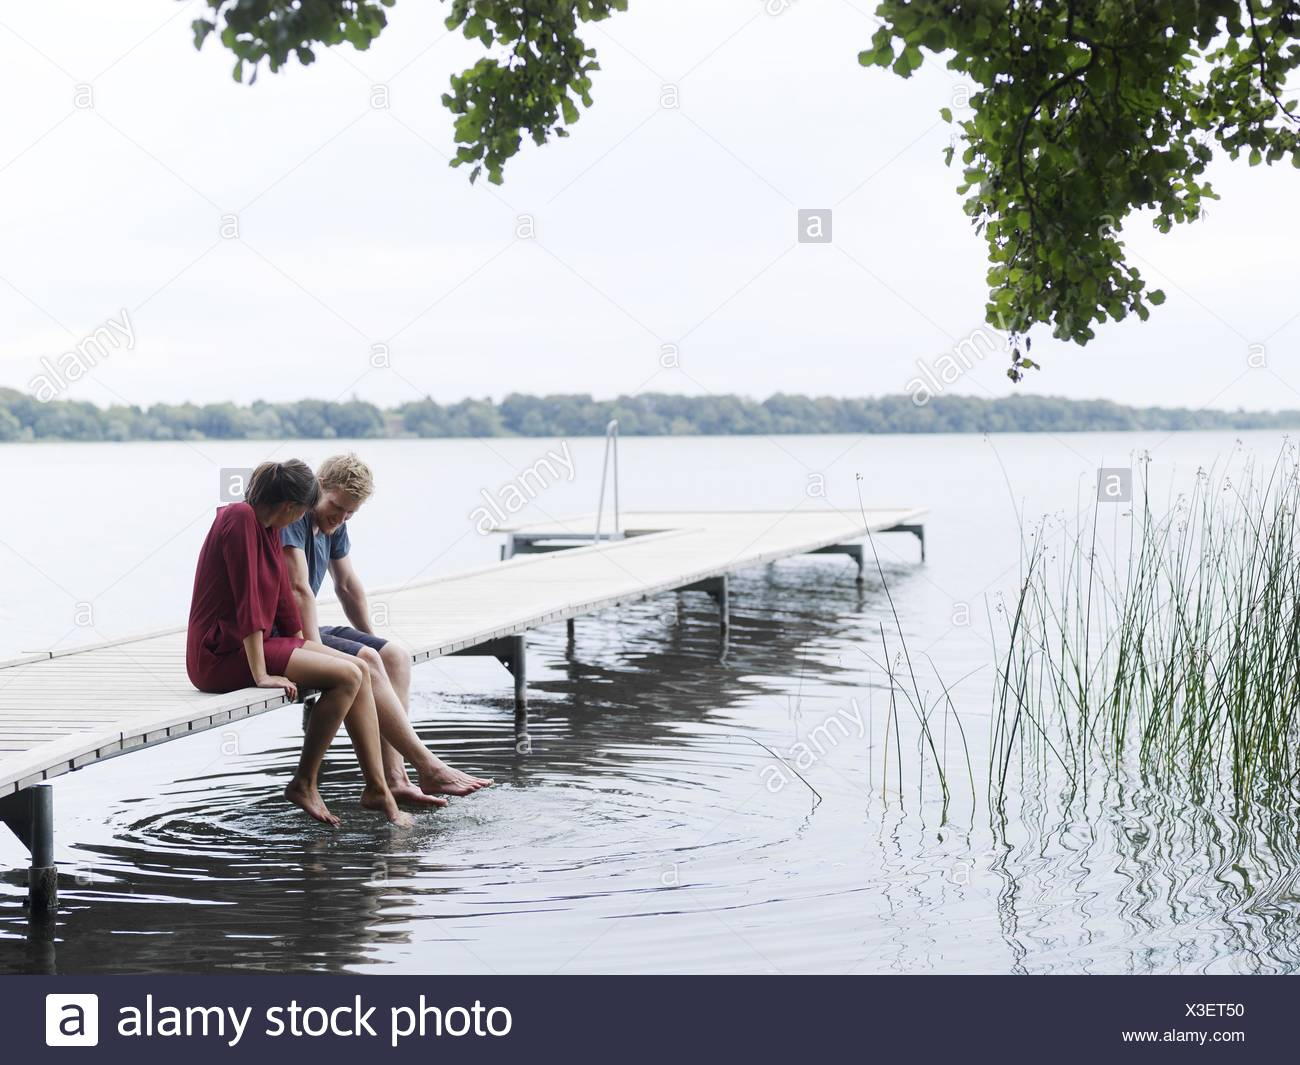 Couple sitting on pier côte à côte les orteils dans l'eau de trempage, Copenhague, Danemark Photo Stock